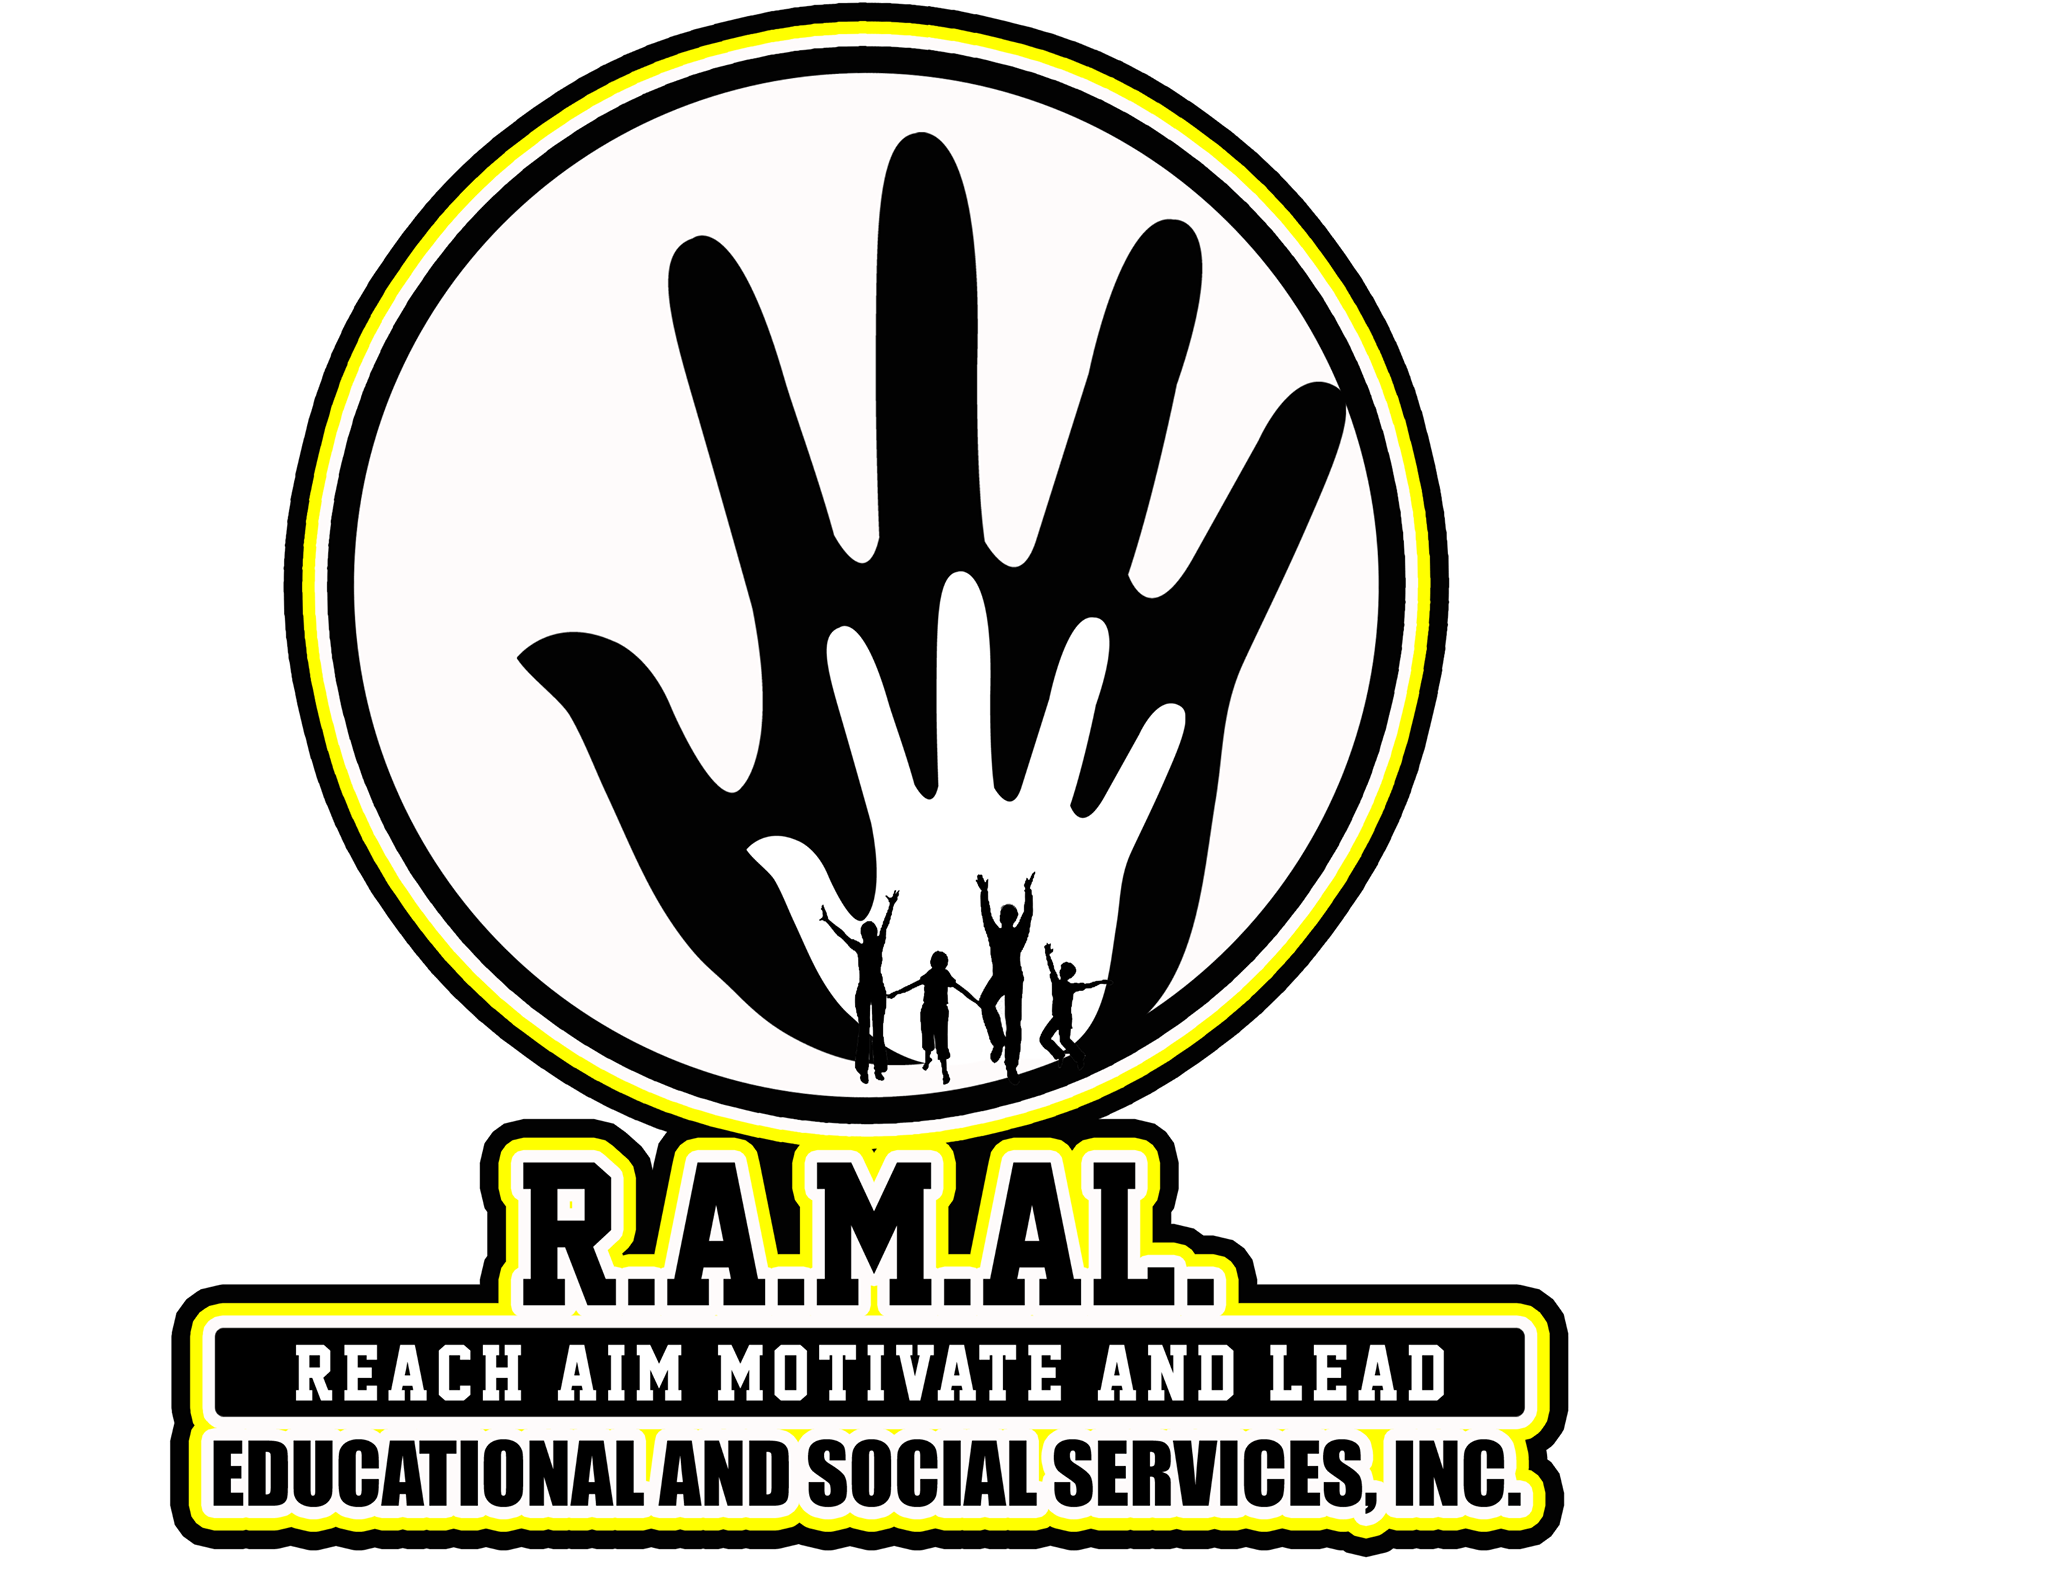 R.A.M.A.L. Educational & Social Services INC